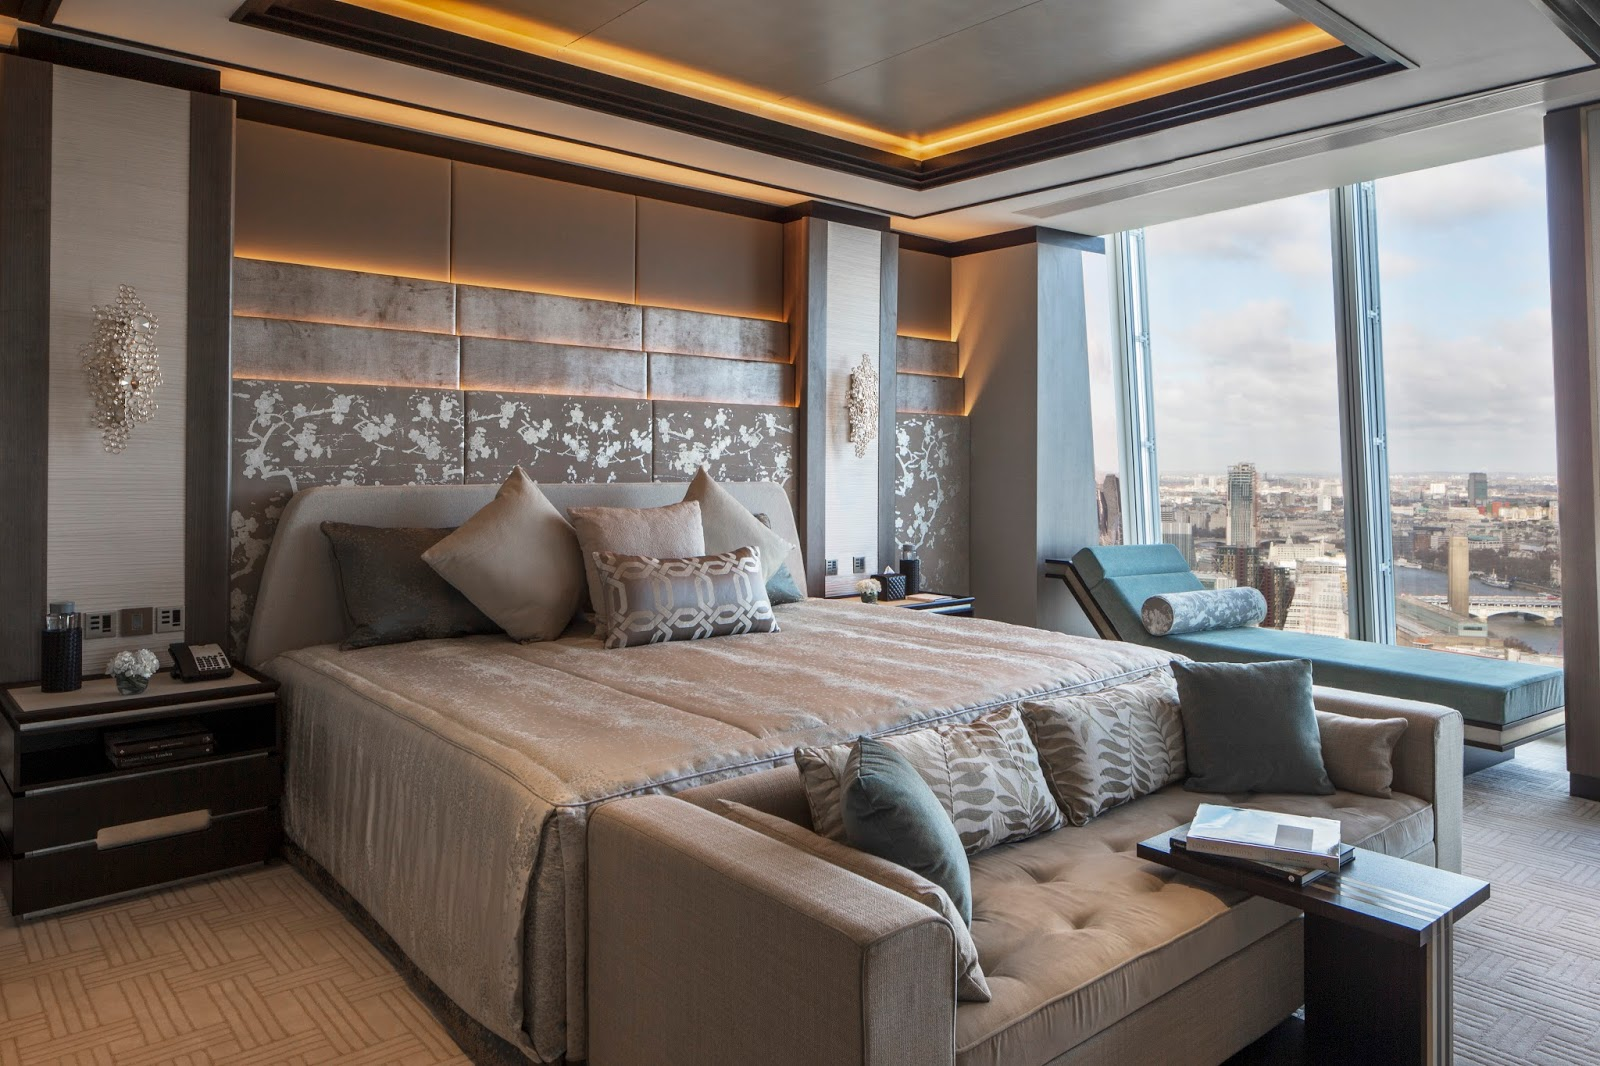 Kee hua chee live shangri la london at the shard offers for Top 10 luxury hotels london